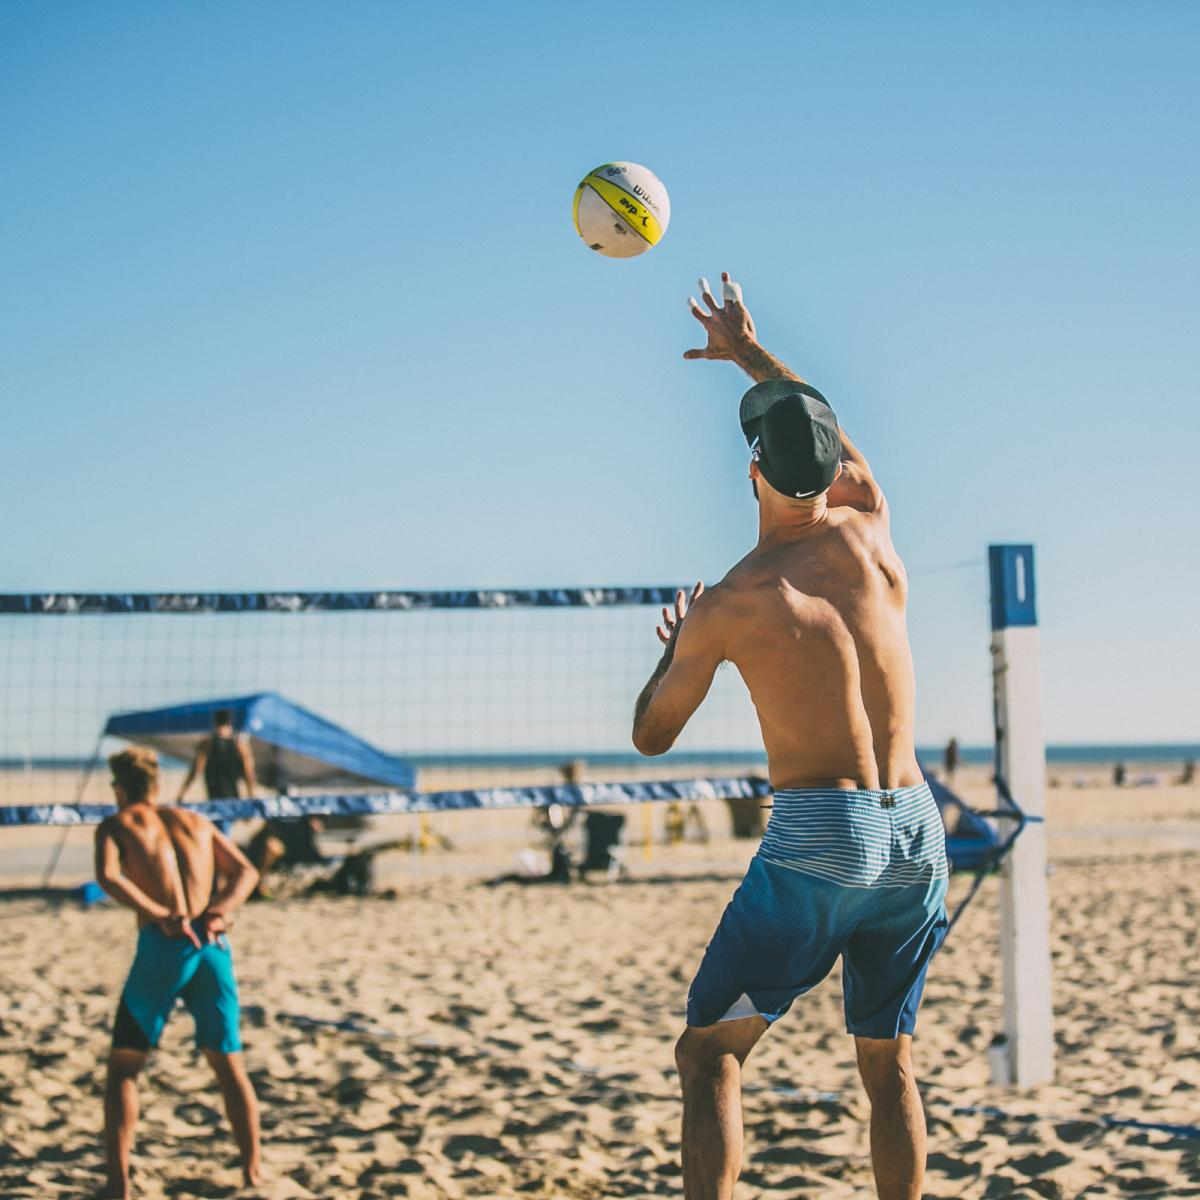 the pros take the court for 18th annual avp beach volleyball